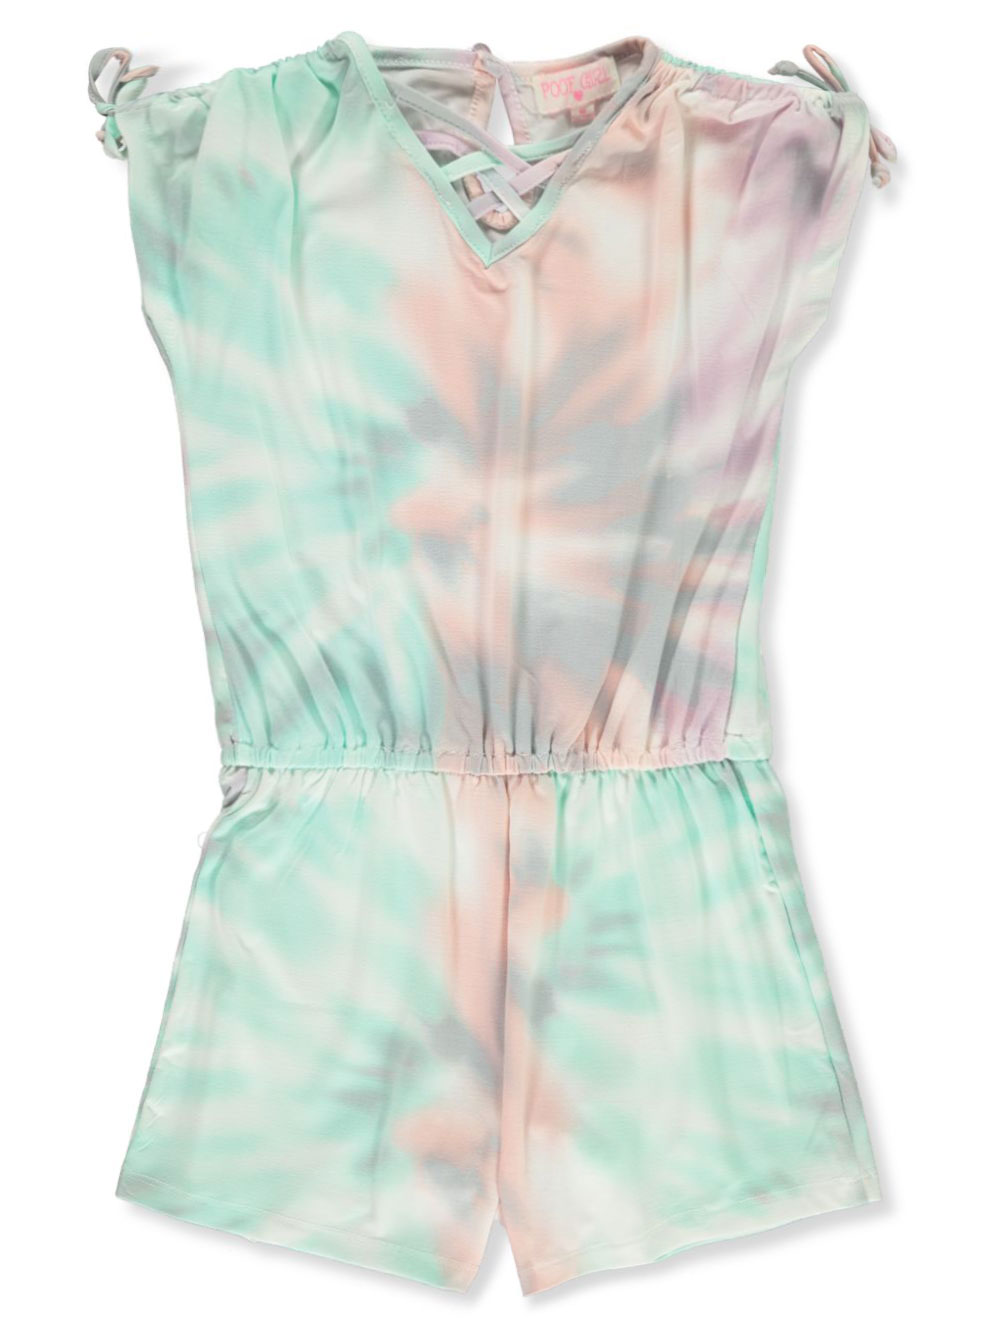 Size 12-14 Rompers Jumpsuits for Girls